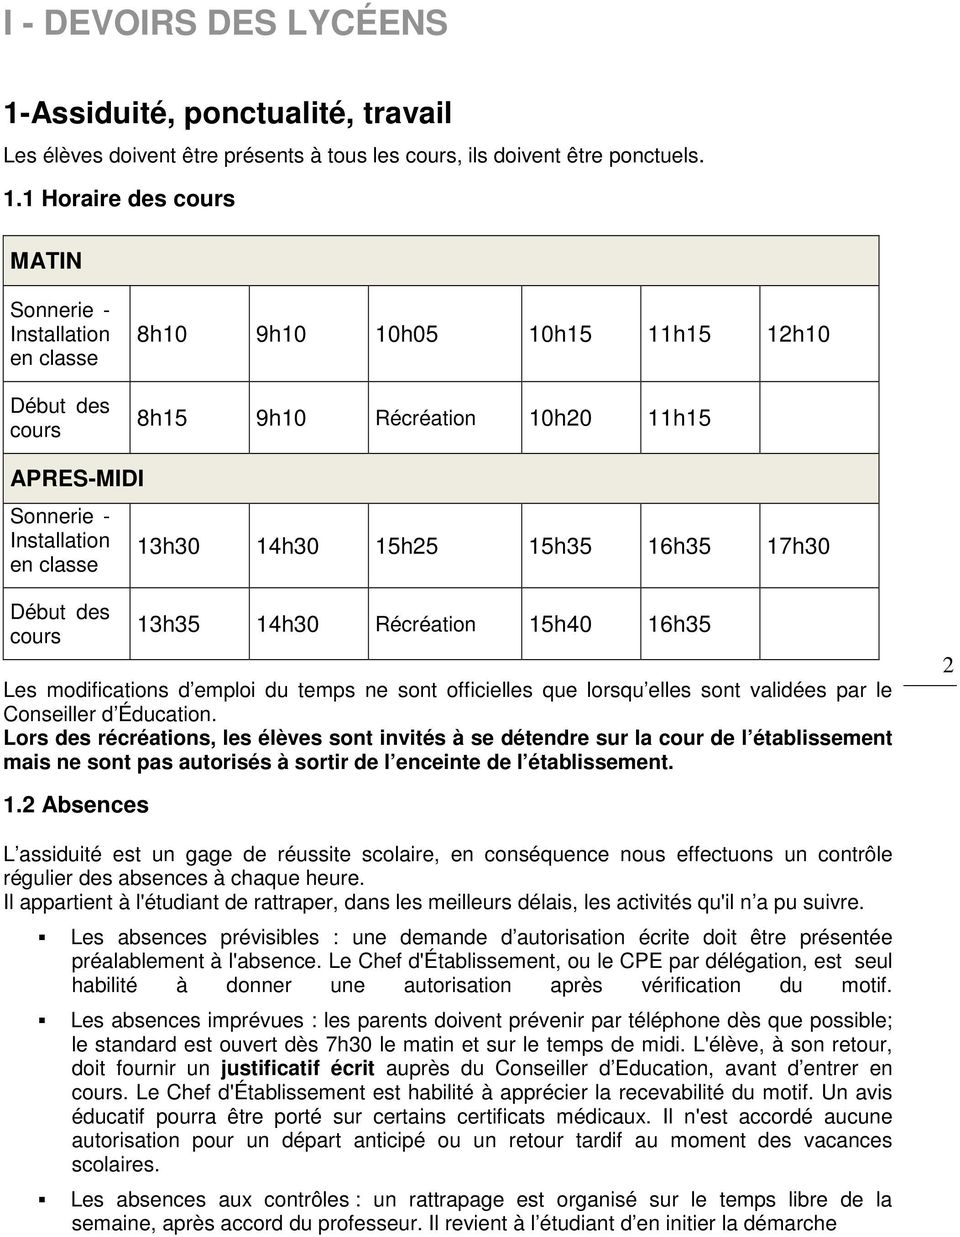 1 Horaire des cours MATIN Sonnerie - Installation en classe Début des cours 8h10 9h10 10h05 10h15 11h15 12h10 8h15 9h10 Récréation 10h20 11h15 APRES-MIDI Sonnerie - Installation en classe 13h30 14h30